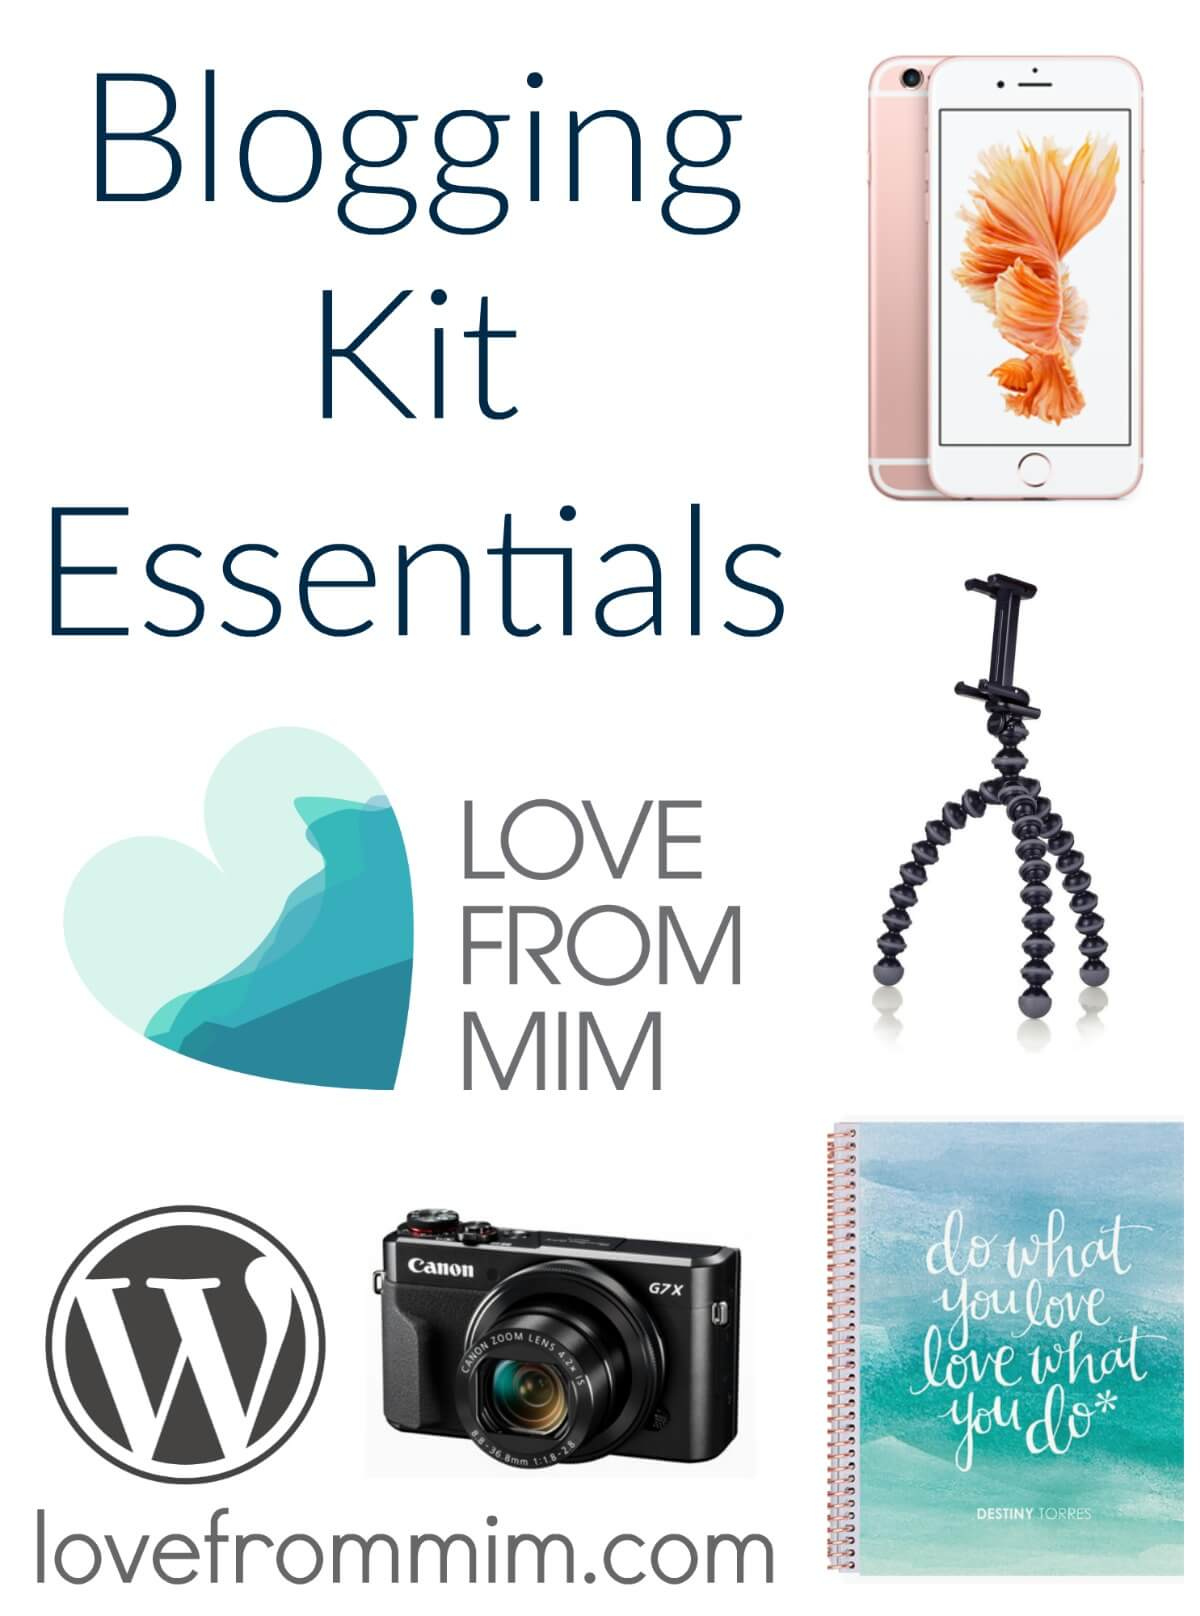 My Blogging Kit Essentials - lovefrommim.com Love from Mim, Blogging, Blogger, What do I need to start a blog, Starting a Blog, Blogging Kit, Blogging Must Haves, Essential Blogging Products, Blog Planner, Canon G7X for Blogging, GorillaPod Tripod, Pipdig, How to start a wordpress blog,